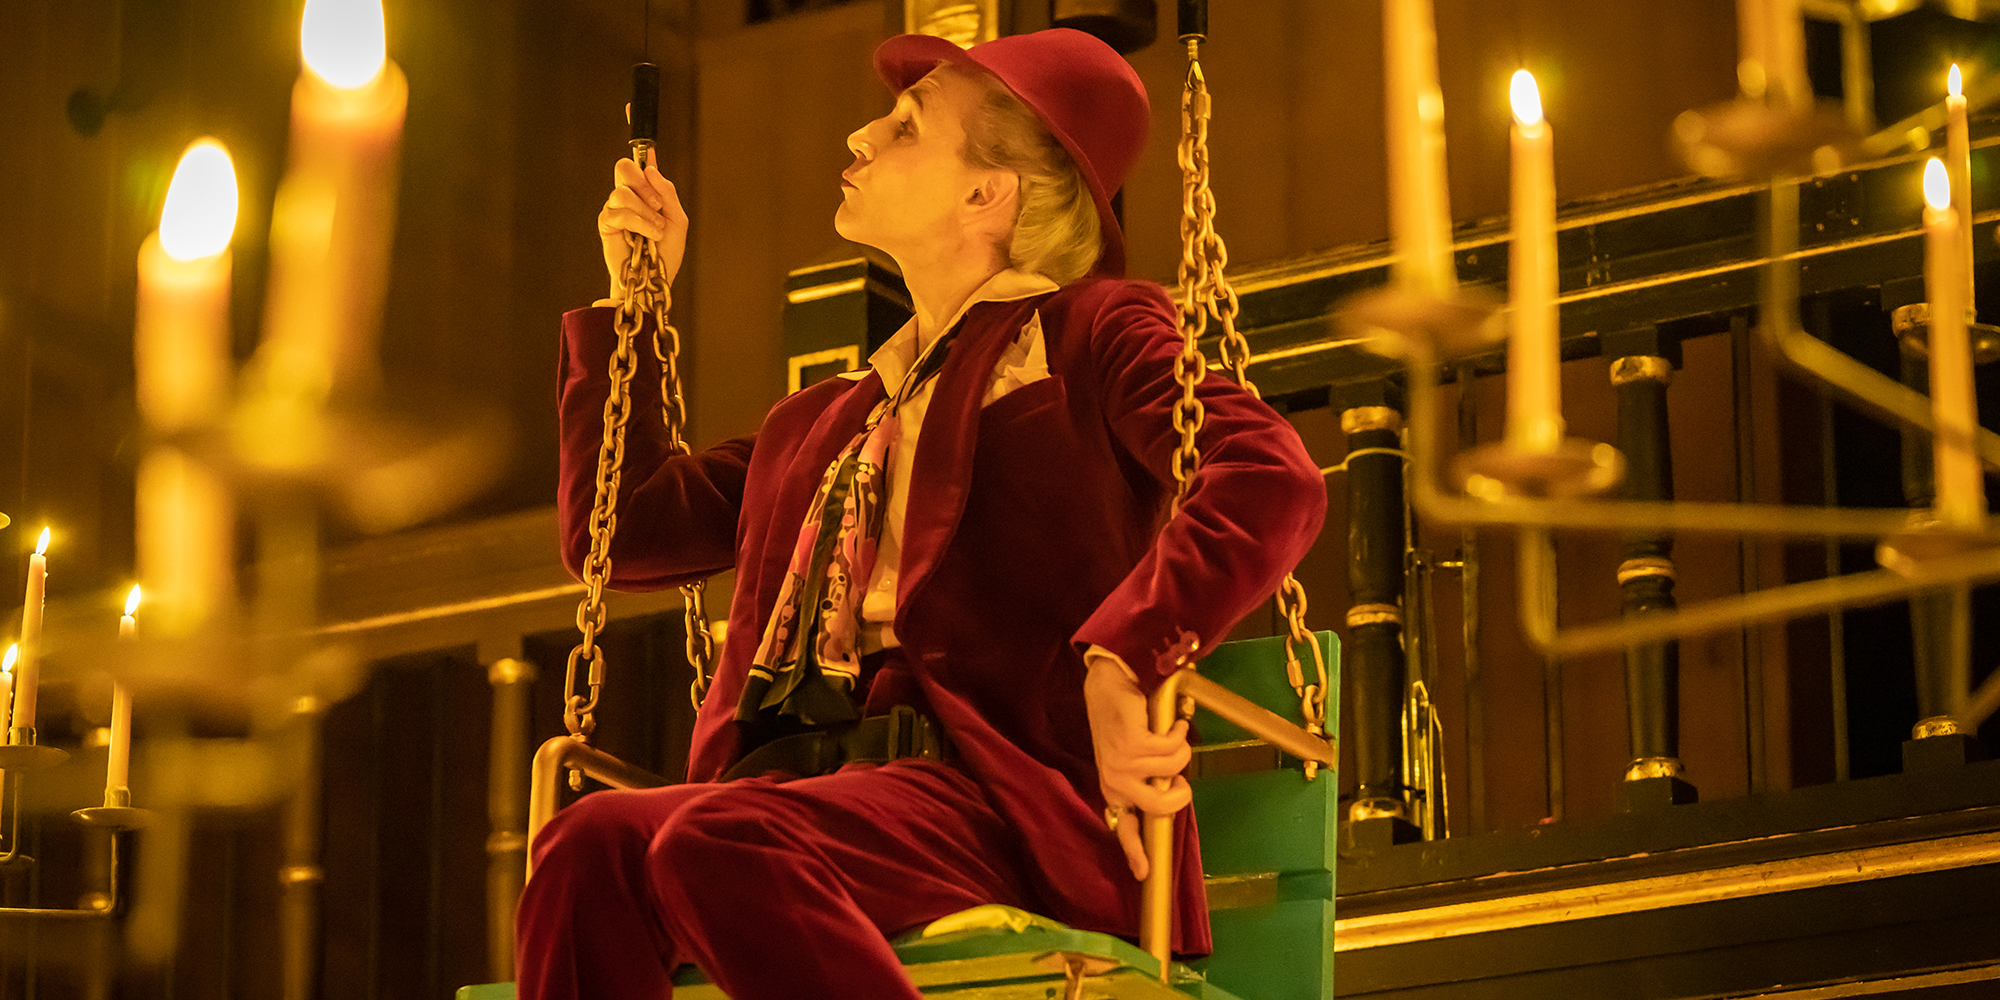 An actor wearing a deep red velvet suit sits on a green swing surrounded by lit candles.